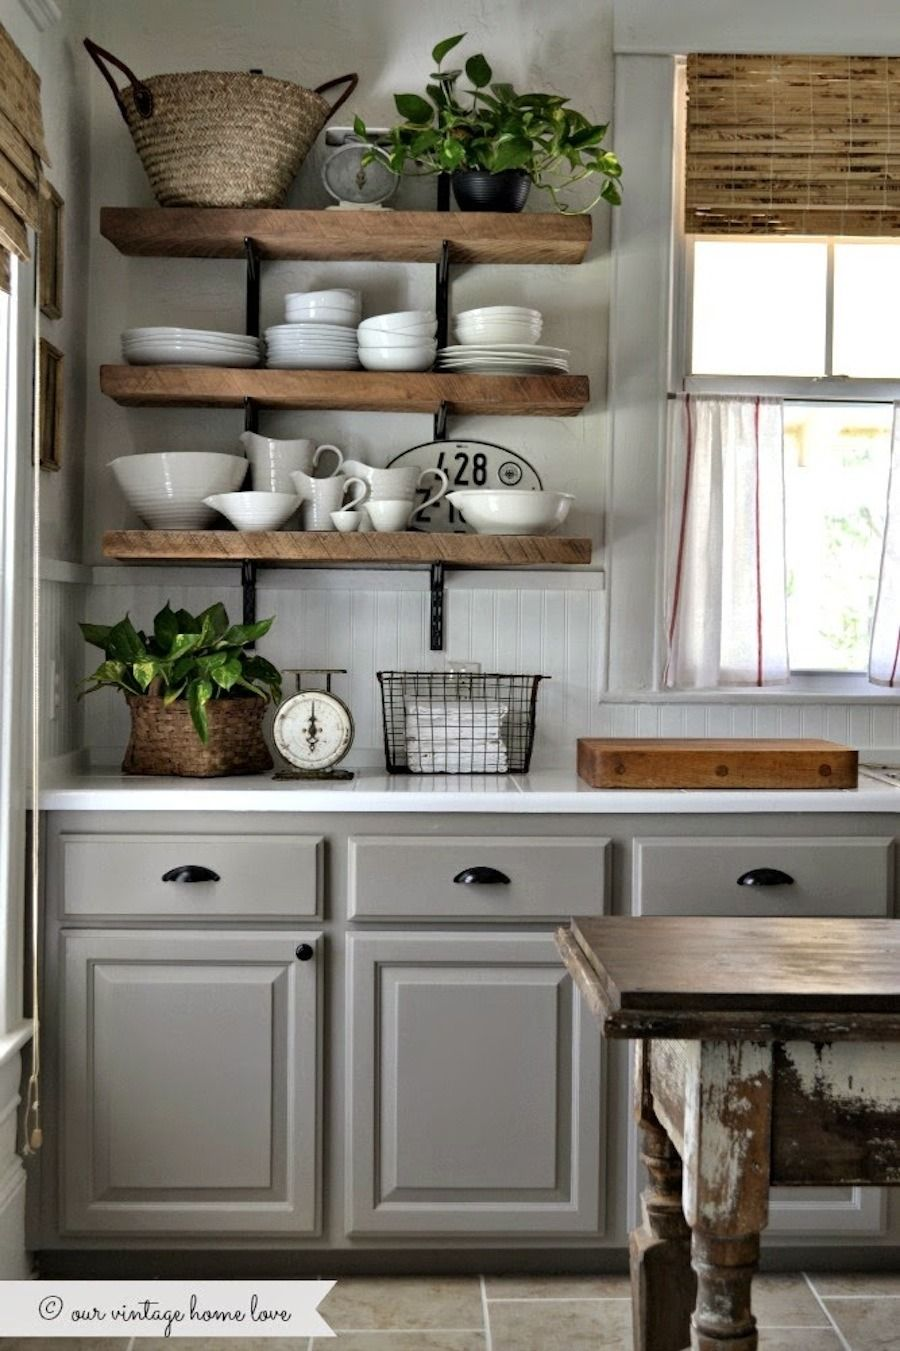 2 country kitchen ideas Rustic Country Kitchen Decorations Distinguish a Unified Design